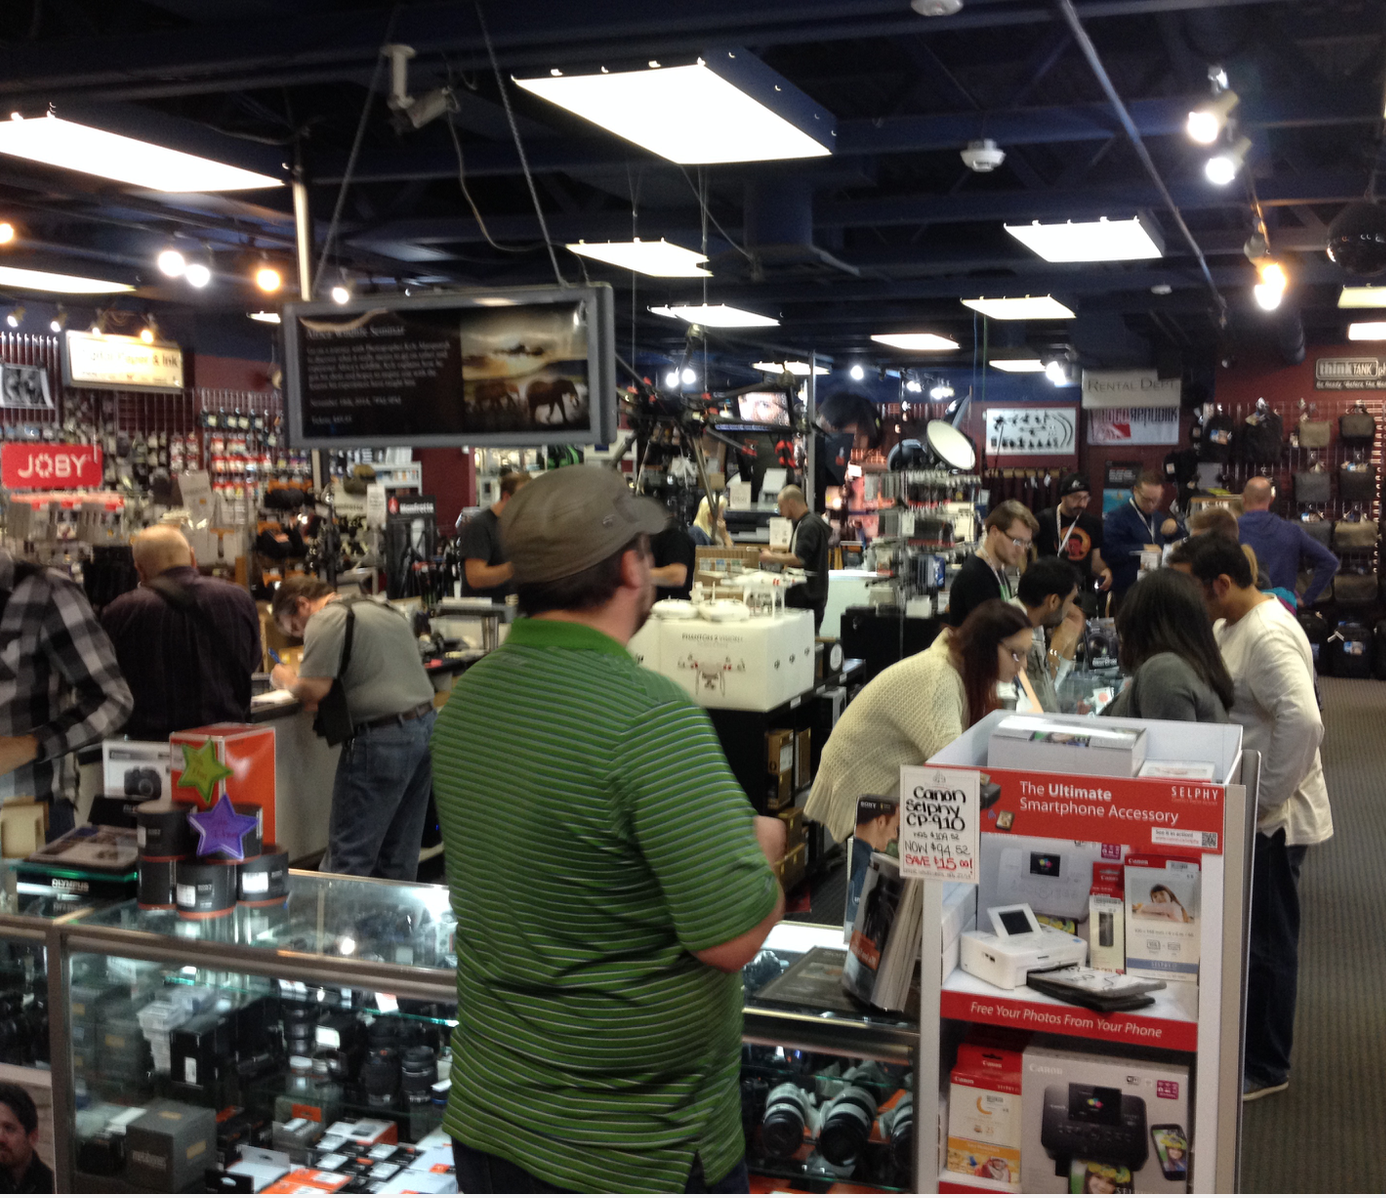 Every time I go to the    Camera Store    is it has a great buzz...I love this place.